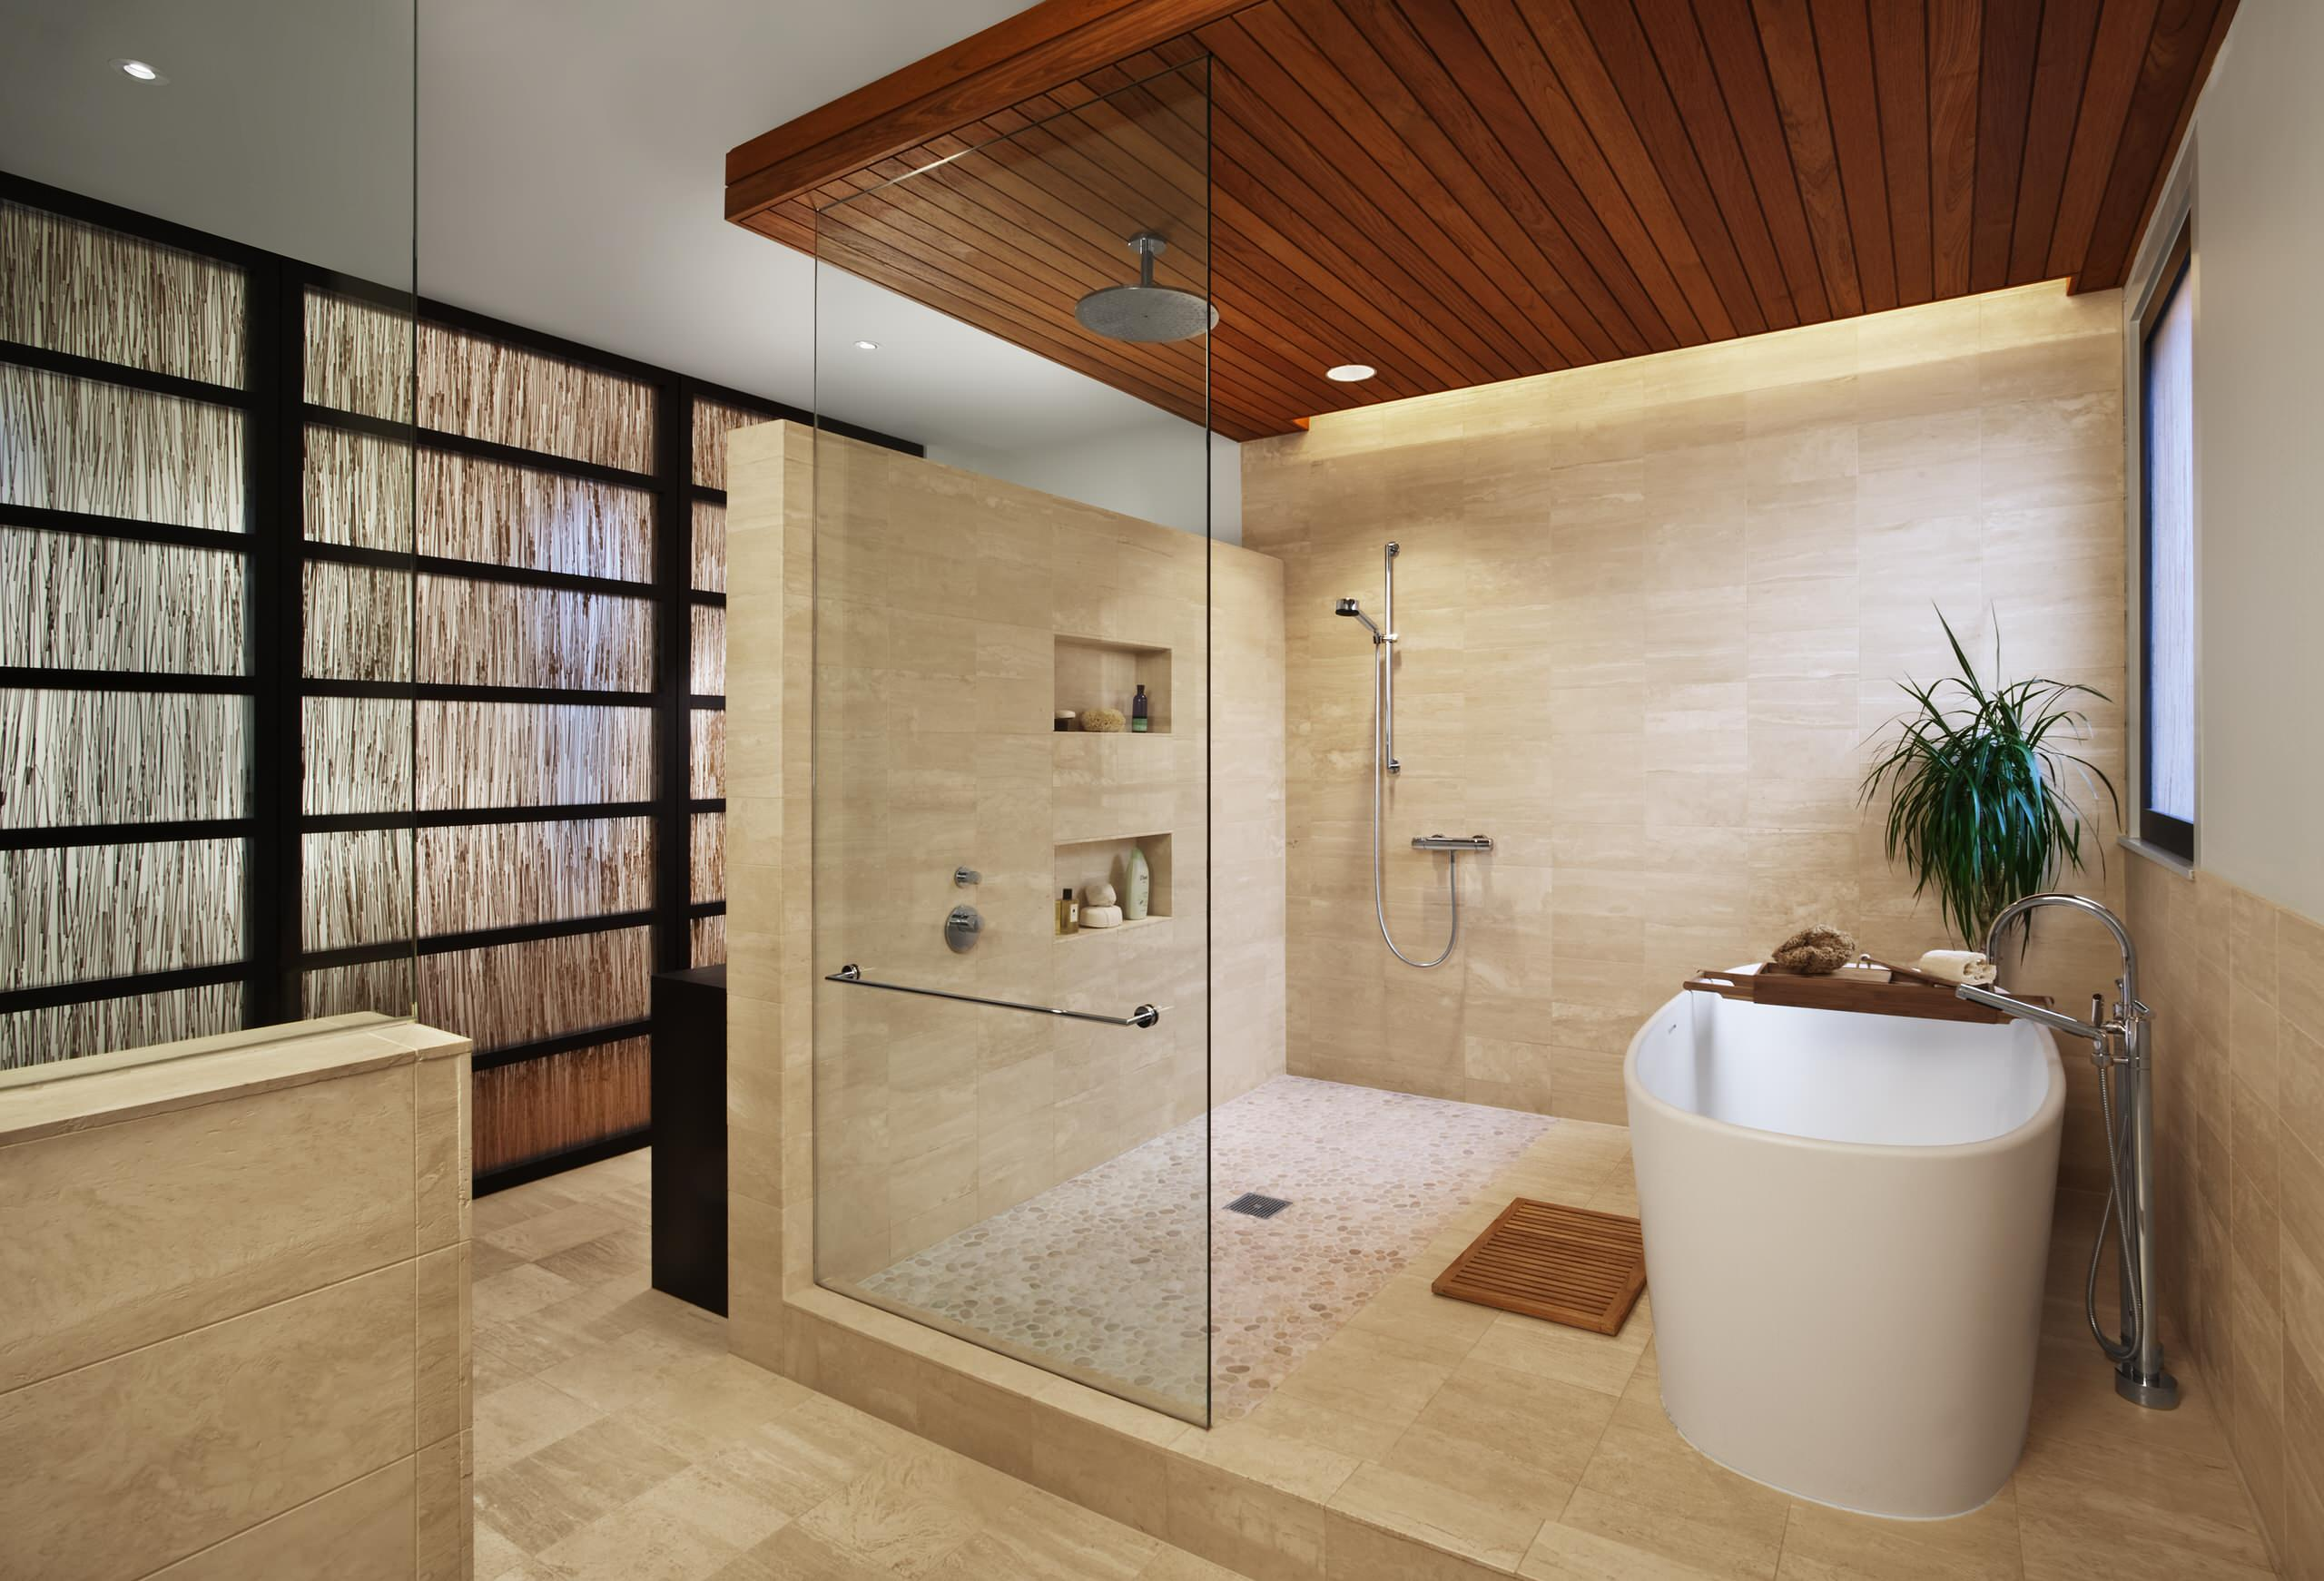 75 beautiful stone tile bathroom pictures ideas may 2021 houzz